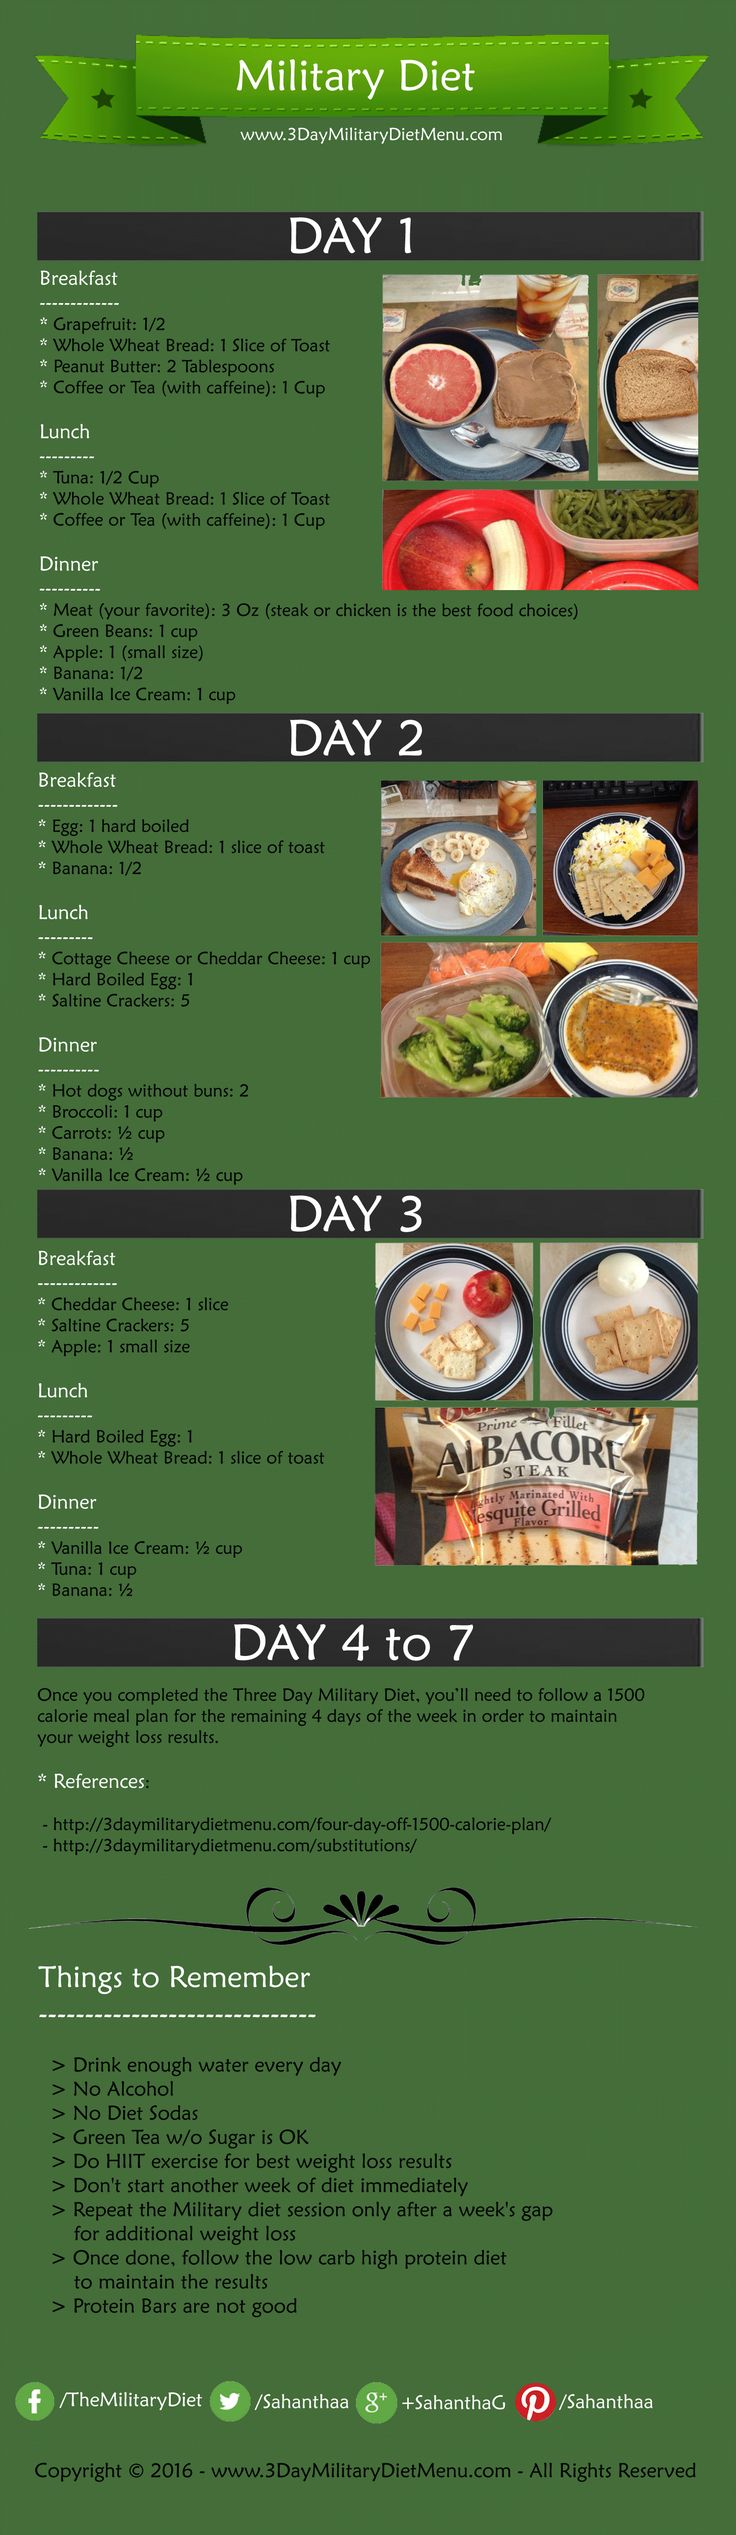 The military diet plan infographic: Follow the 3 day military diet aka ice cream diet & lose 10 pounds in 3 days naturally.